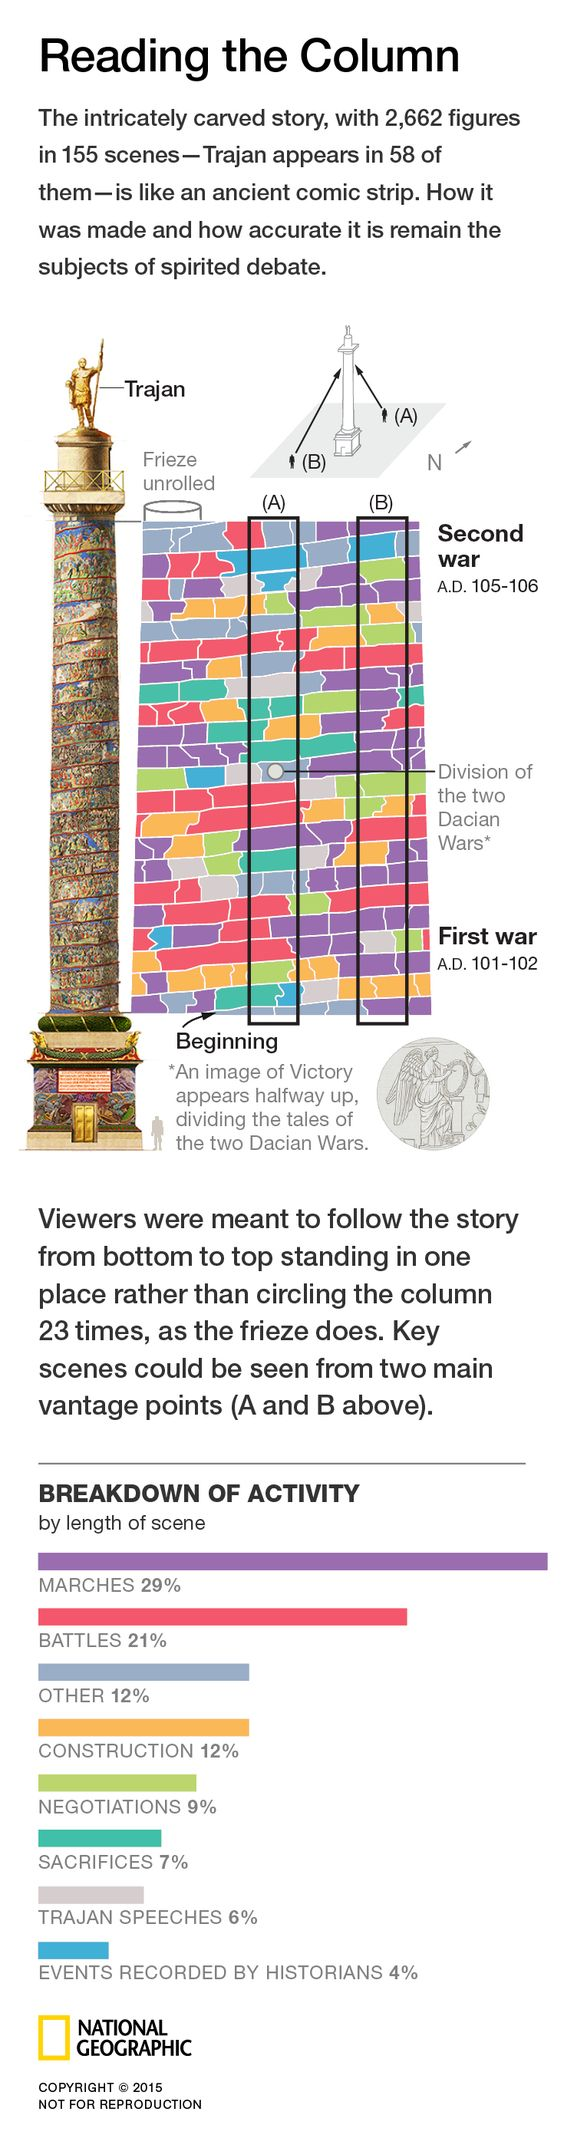 TRAJAN'S COLUMN - The victory of the Roman emperor Trajan over the Dacians in back-to-back wars. By Fernando Baptista, Daniela Santamarina and Emily Eng. Published on April 2015.: